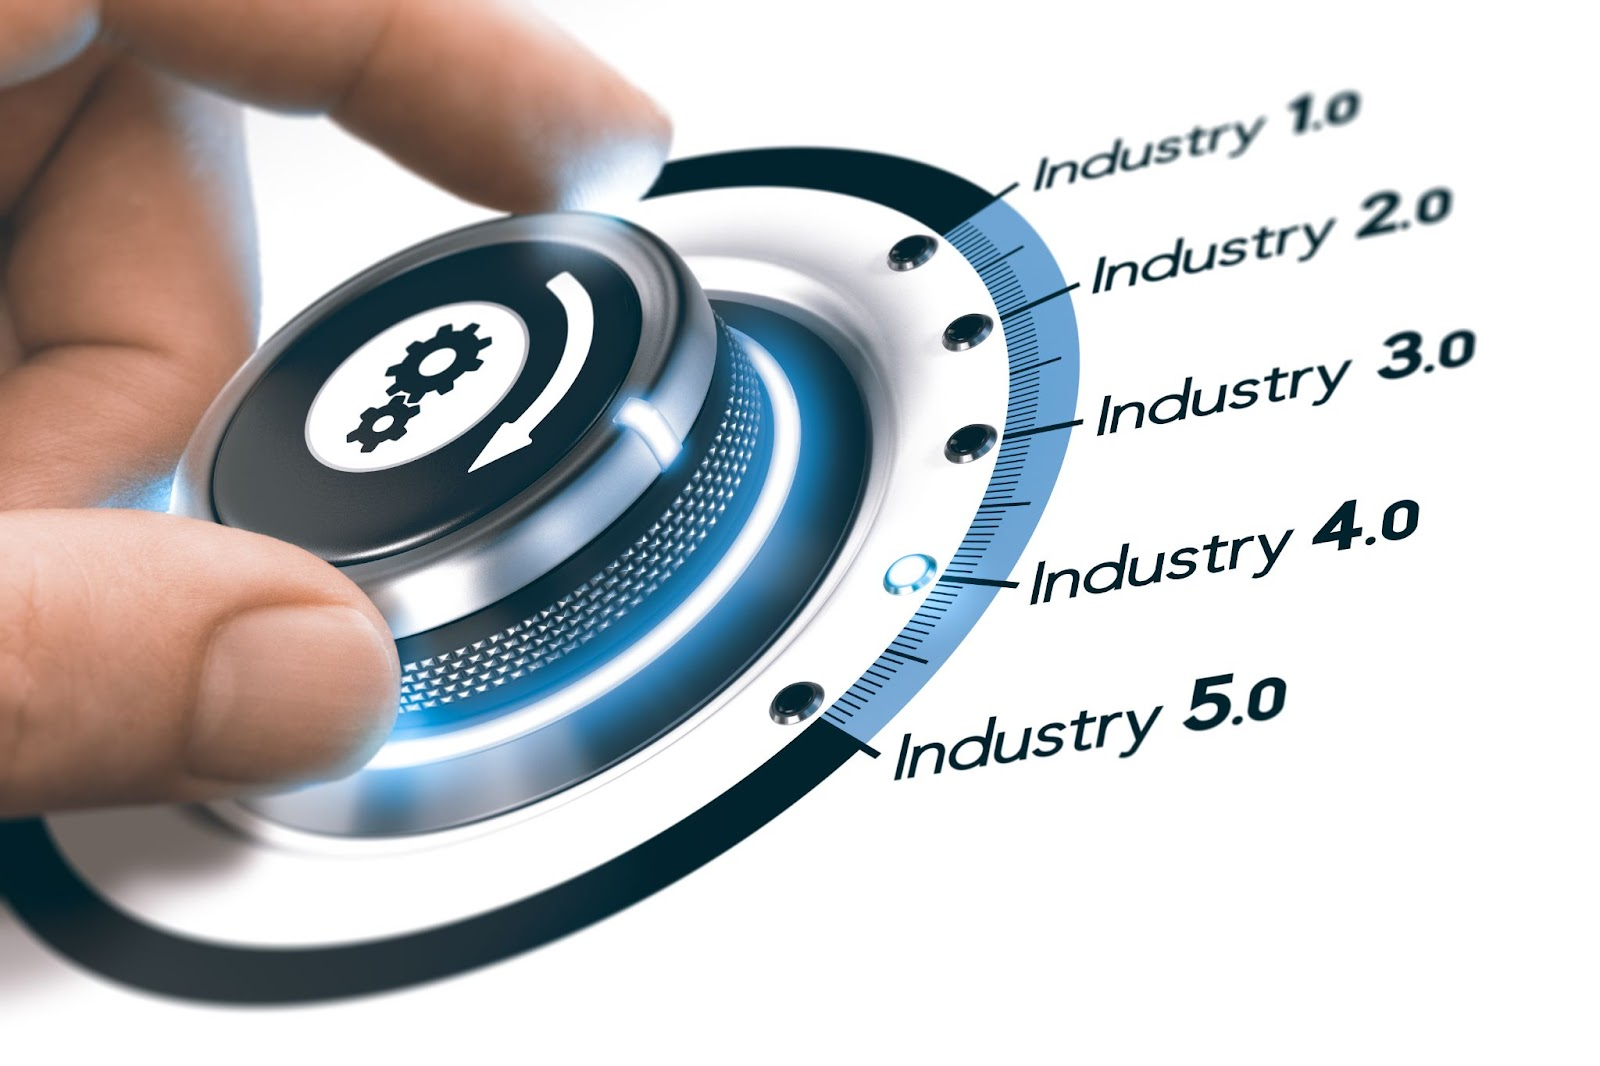 Picture of a dial showing all the industries from Industry 1.0 to Industry 5.0